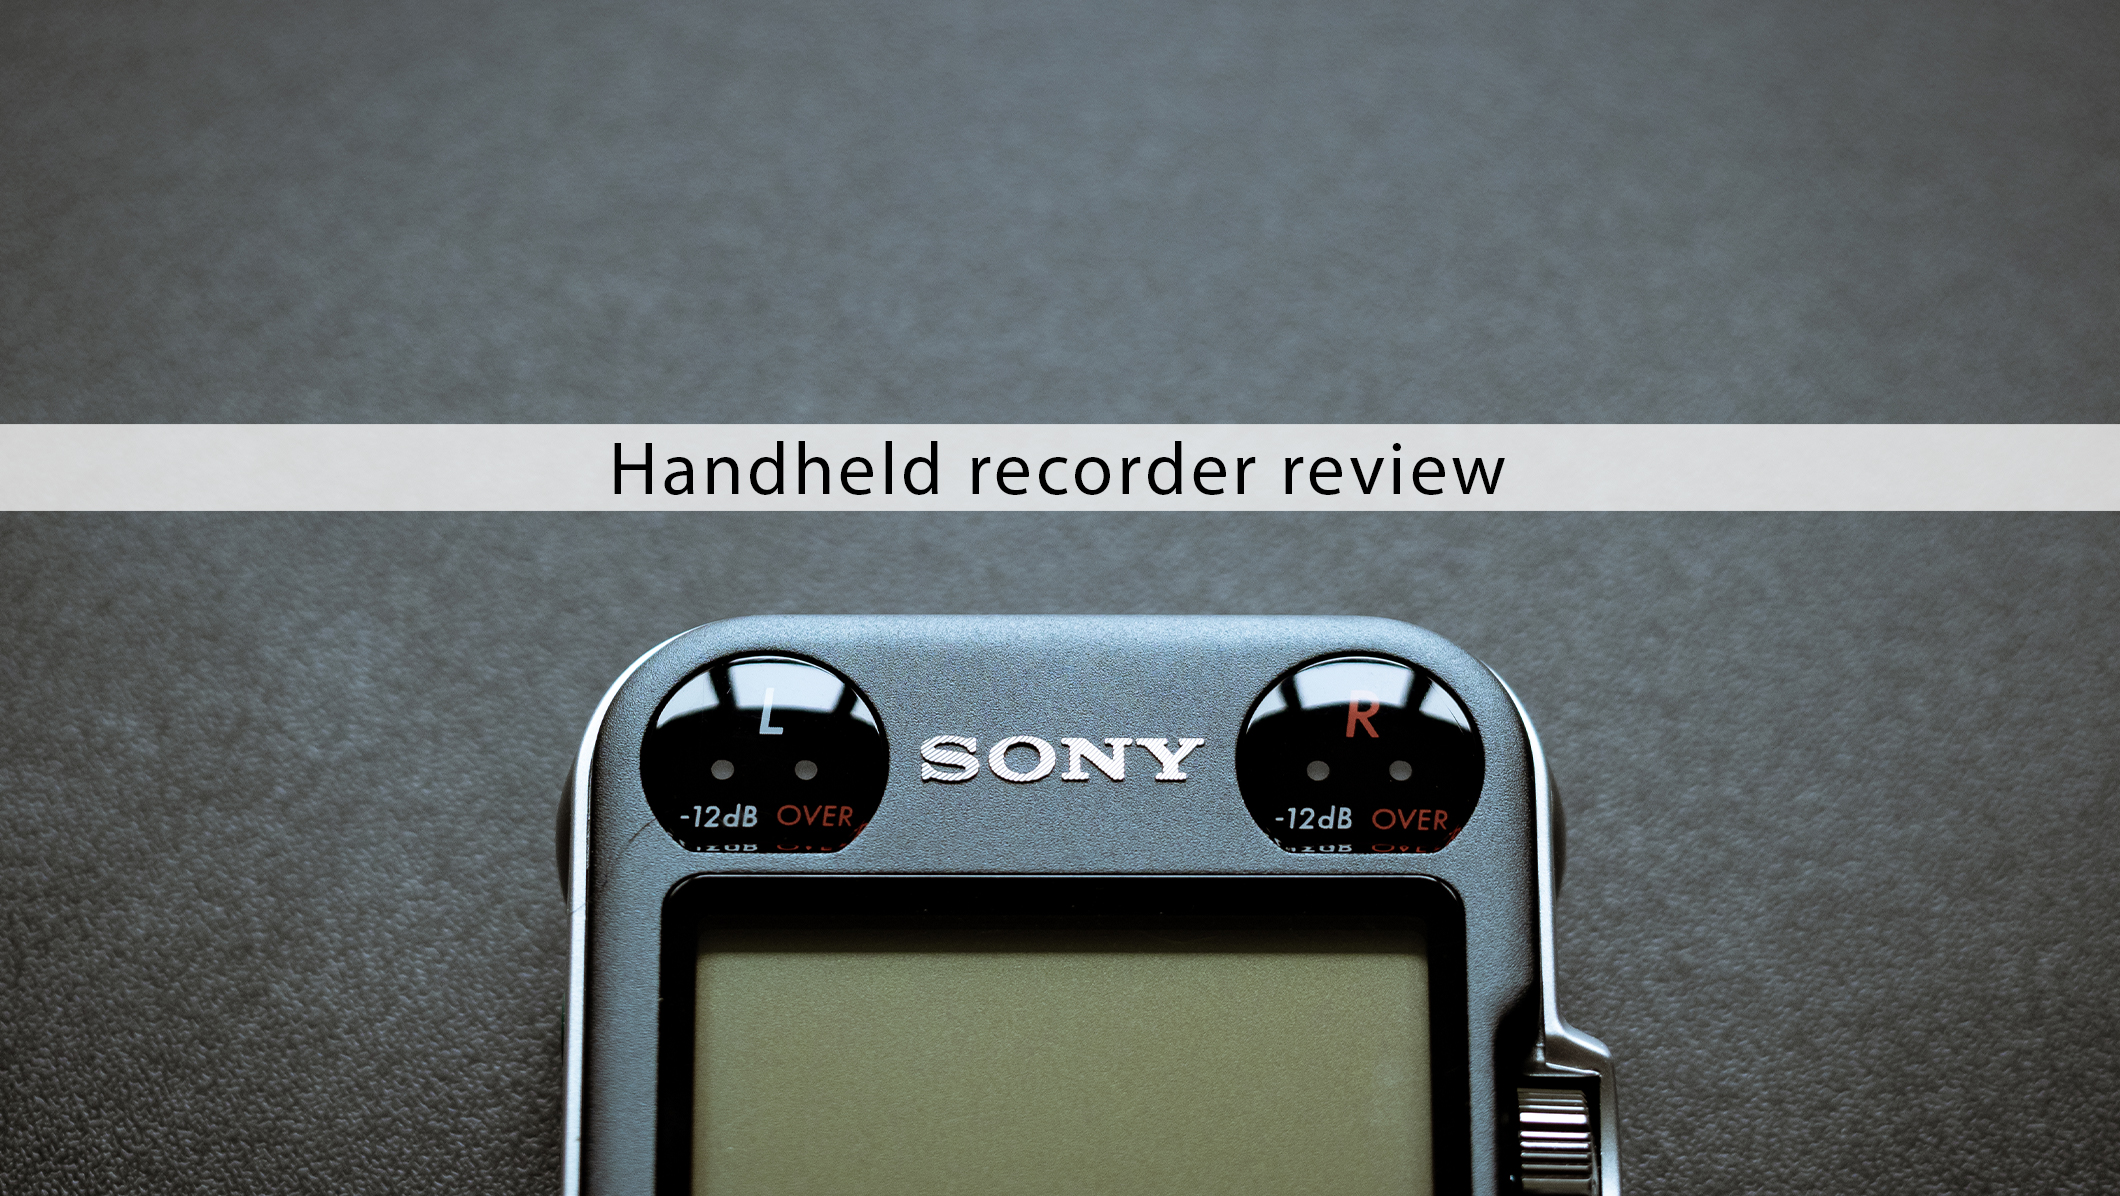 Sony PCM M10 handheld recorder